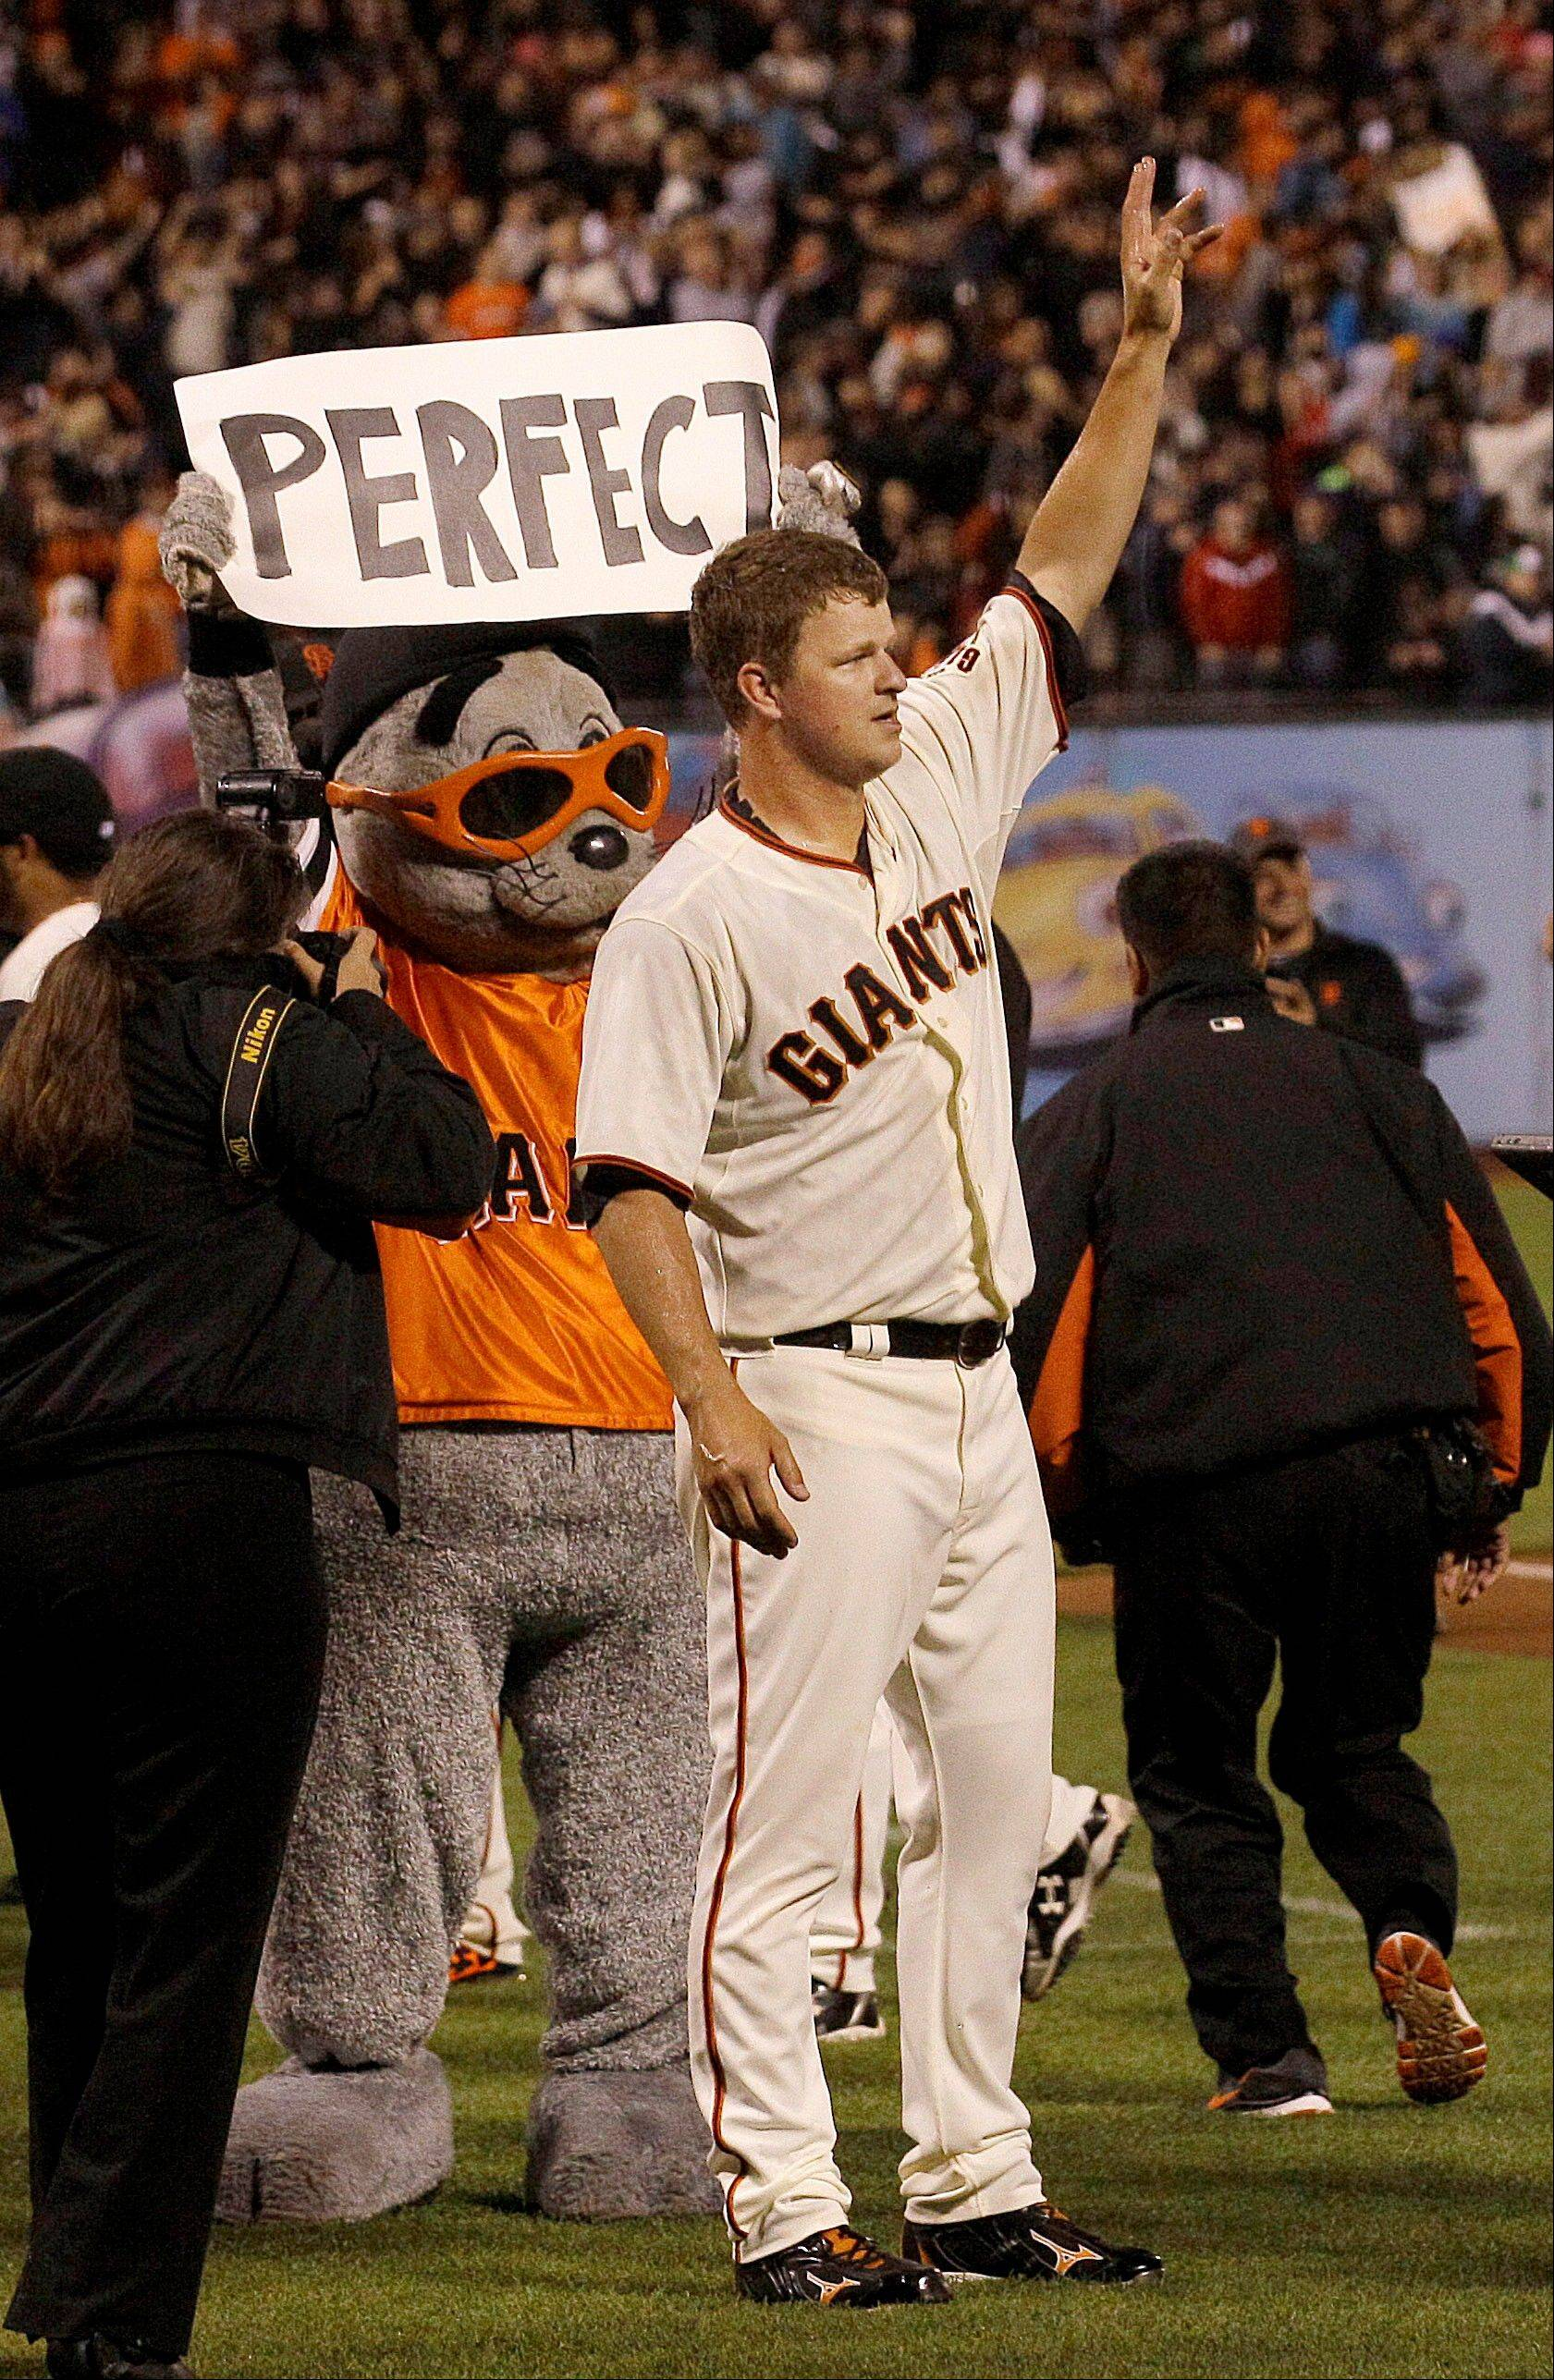 Giants pitcher Matt Cain celebrates after the final out of his perfact game against the Houston Astros on Wednesday in San Francisco.